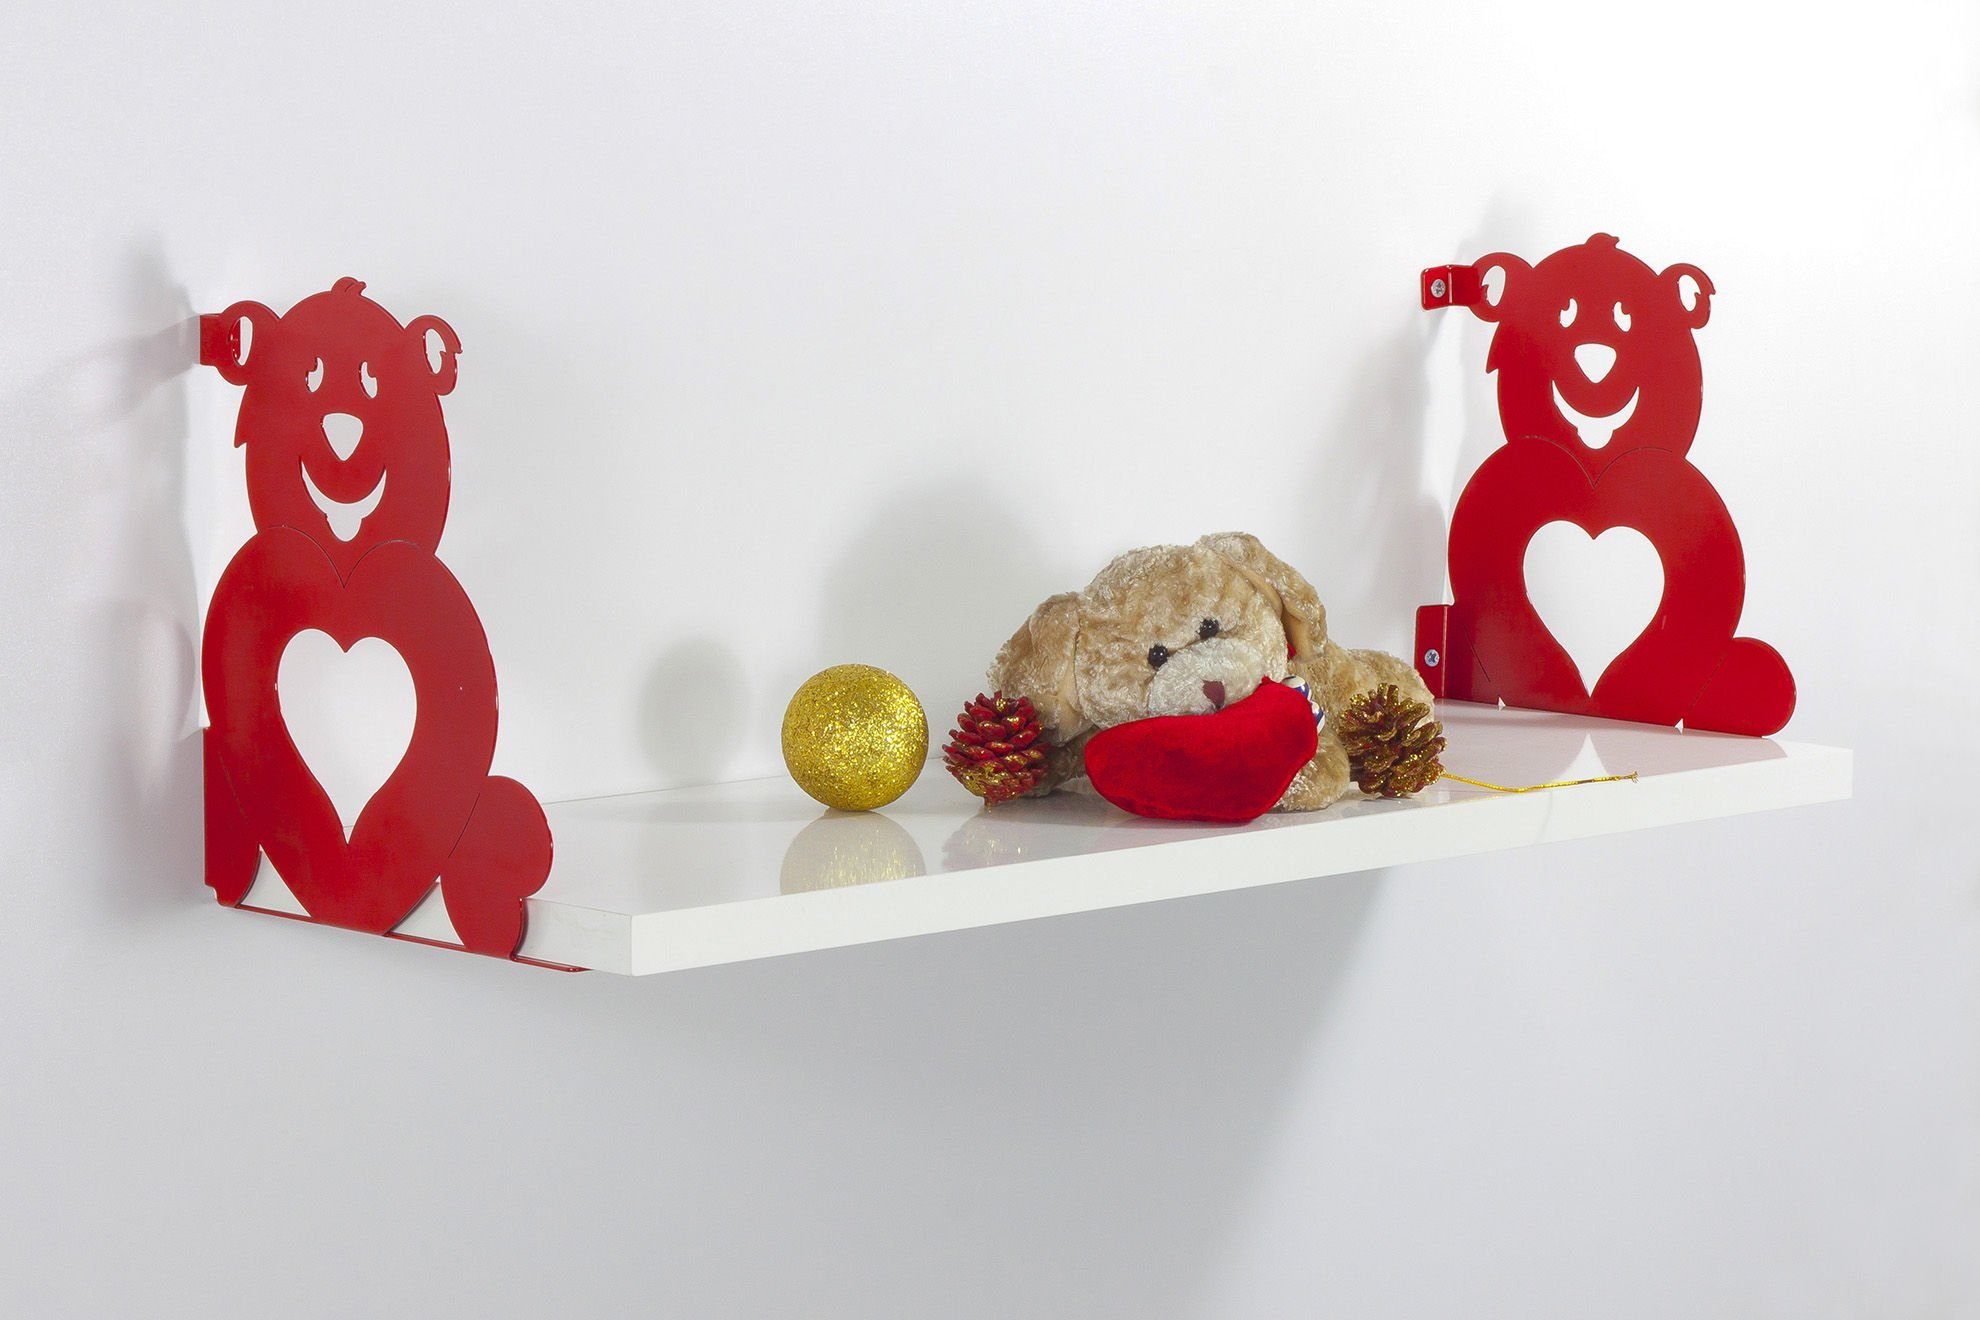 Red Teddy Bears with Heart Wall Shelf, 100% Melamine Coated Particle Board - Size (23.6'' x 7.9'' x 7.9''), Easy to Hang with Invisible Brackets, Wall Mounted Floating Shelves for Home & Office